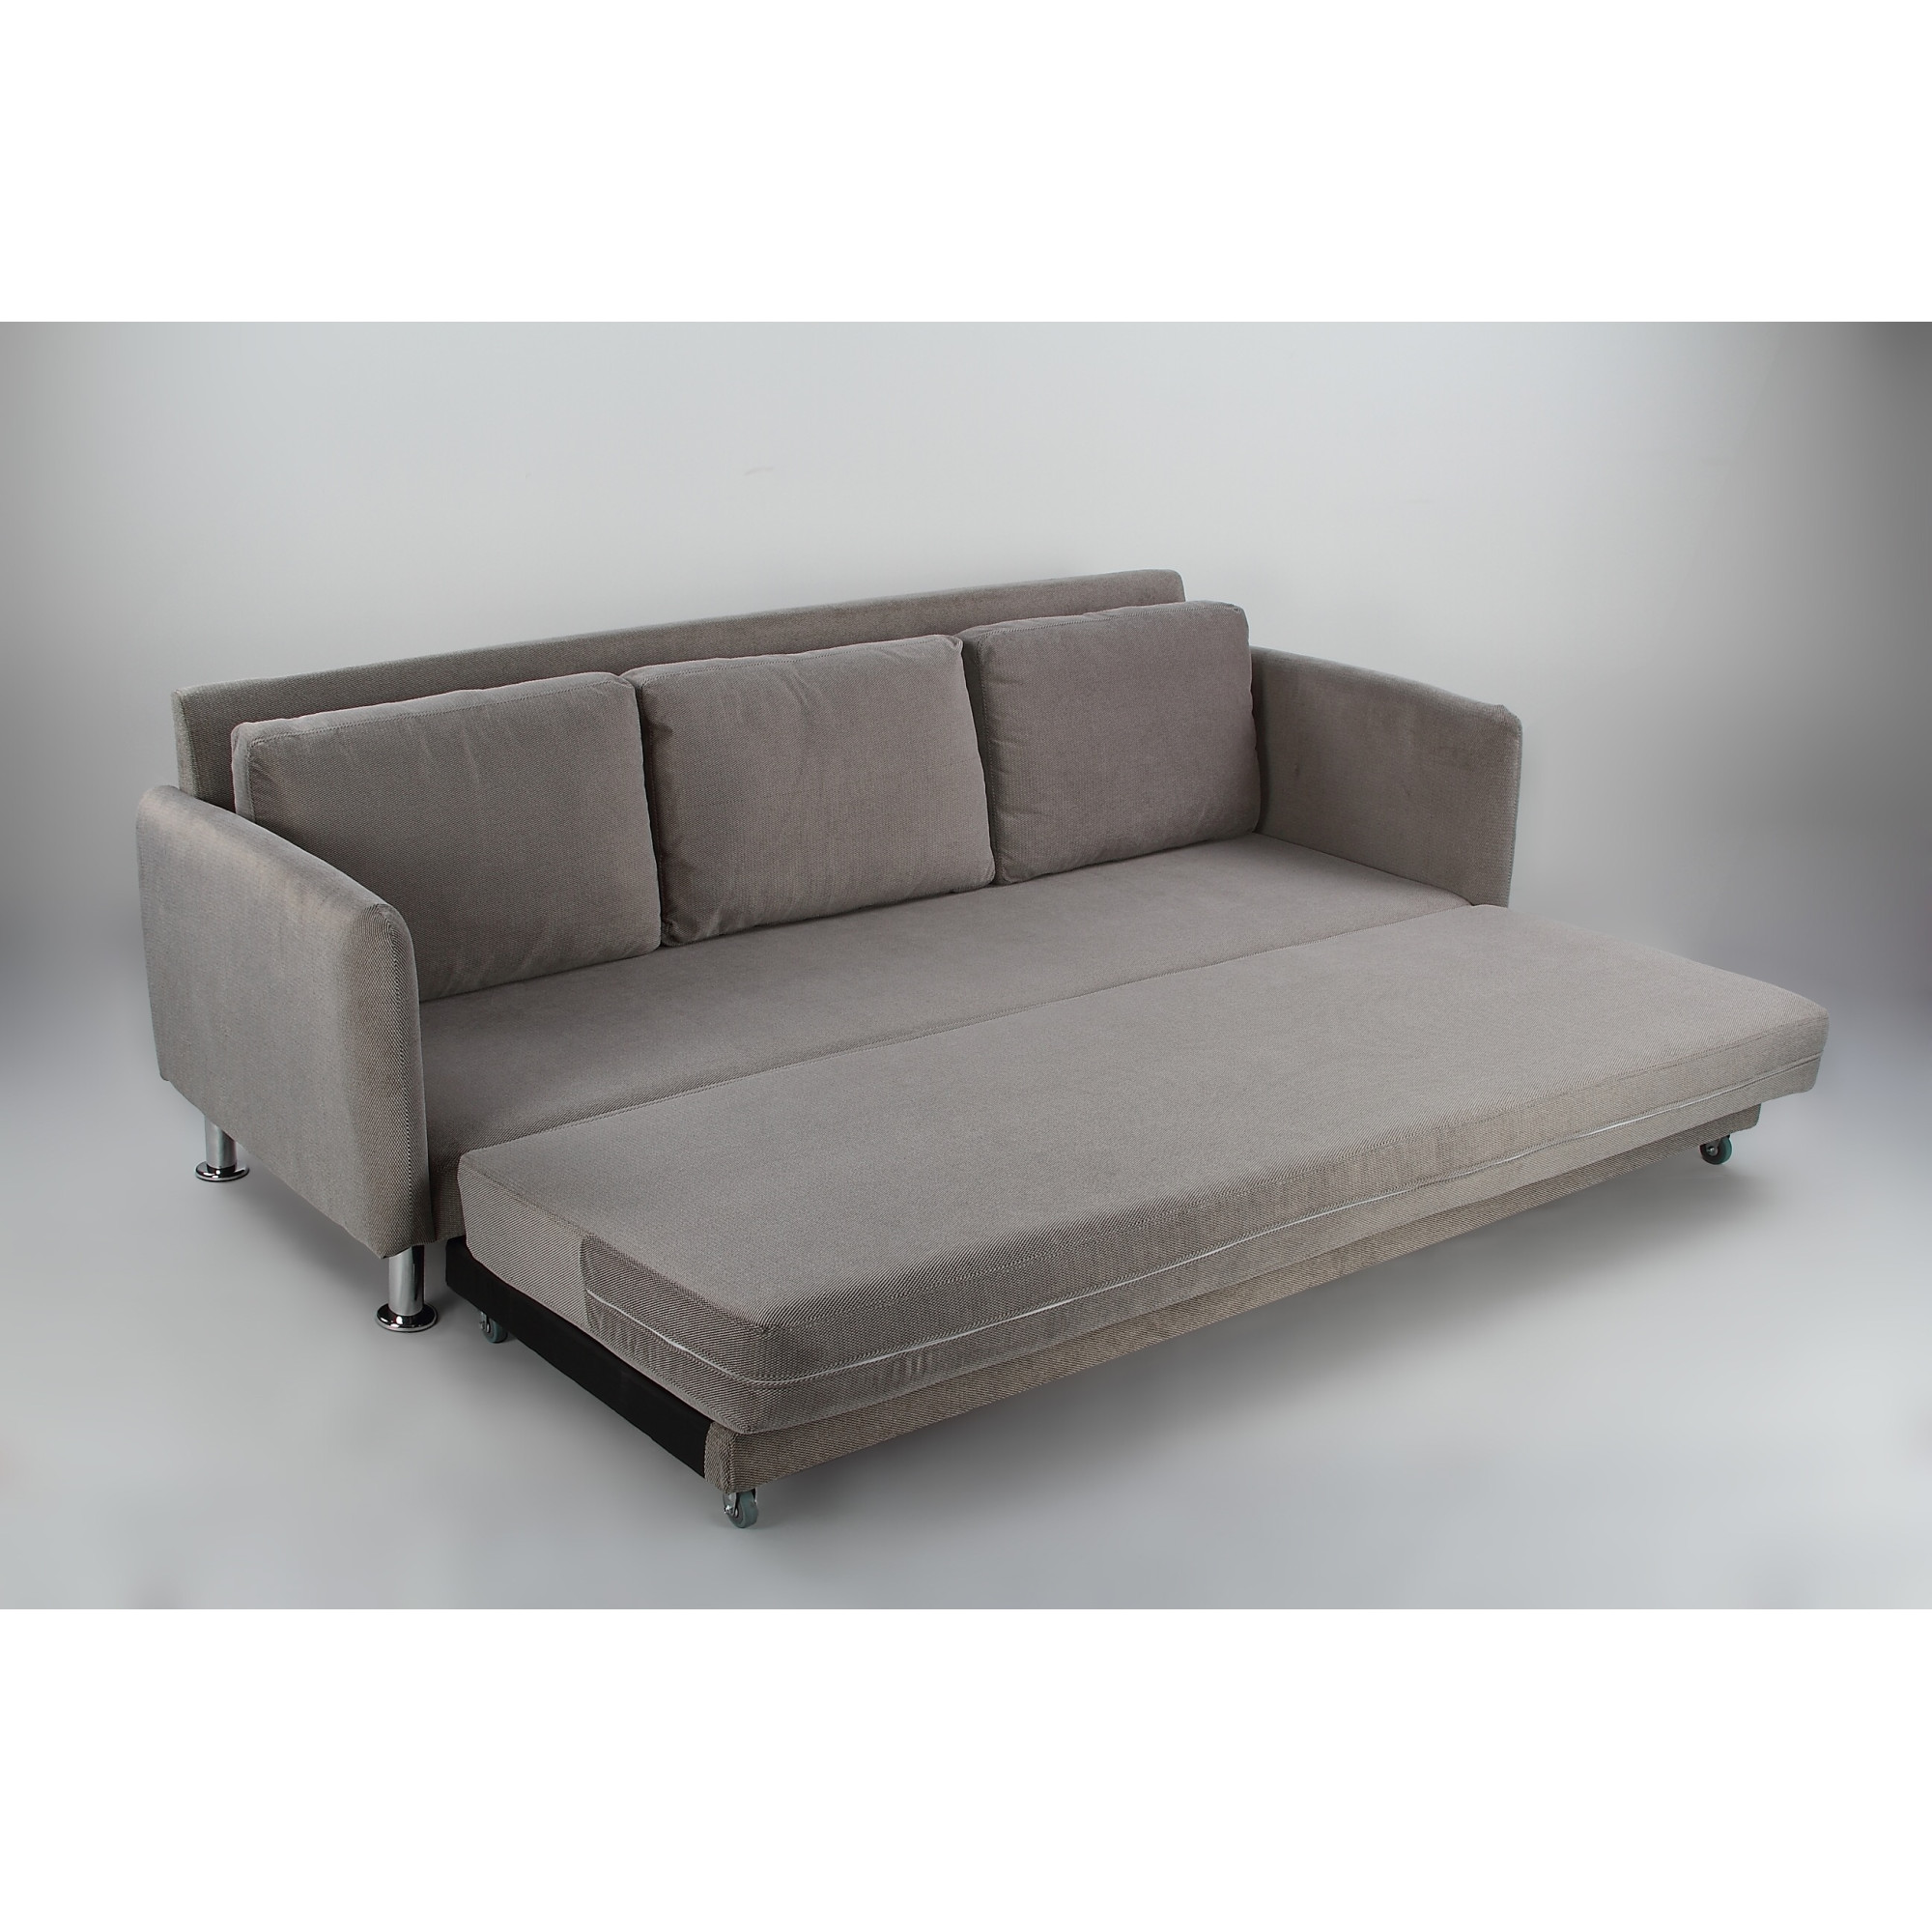 Cozy 3 Seater Grey Pull Out Sofa Bed